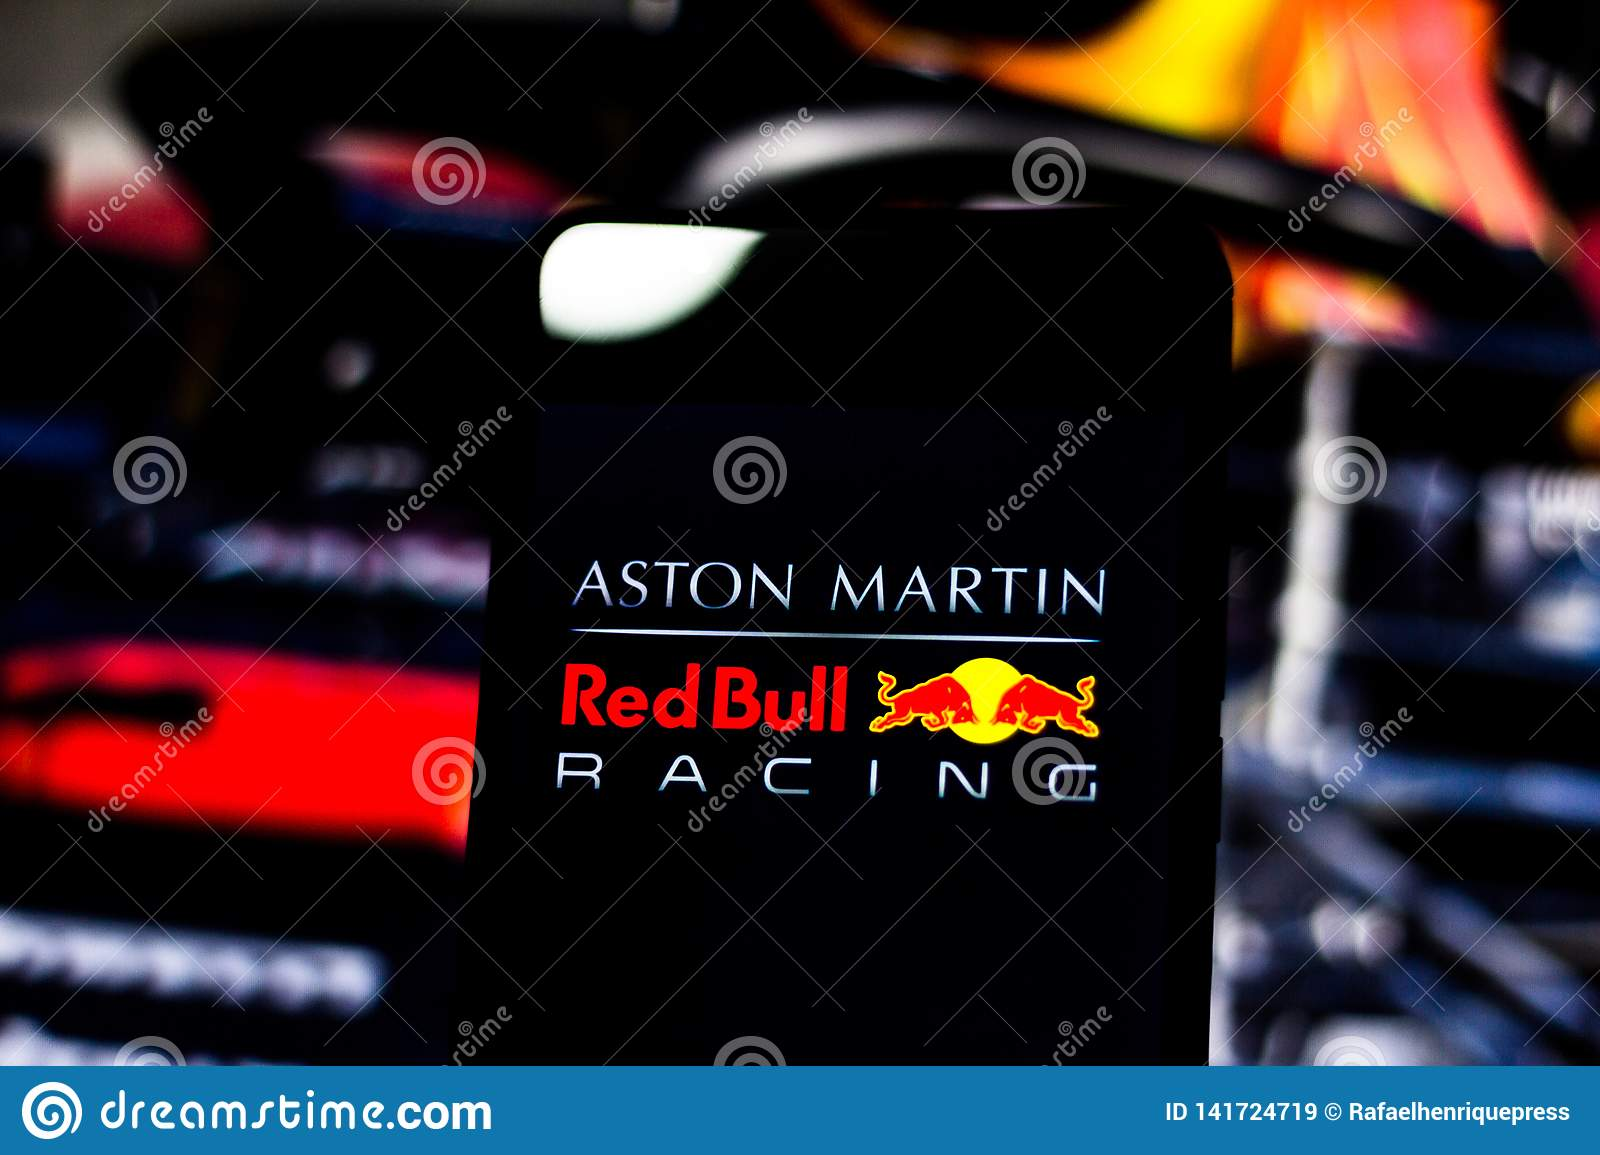 Team Logo Aston Martin Red Bull Racing Formula 1 On The Screen Of The Mobile Device Editorial Stock Image Image Of Cellular Drive 141724719